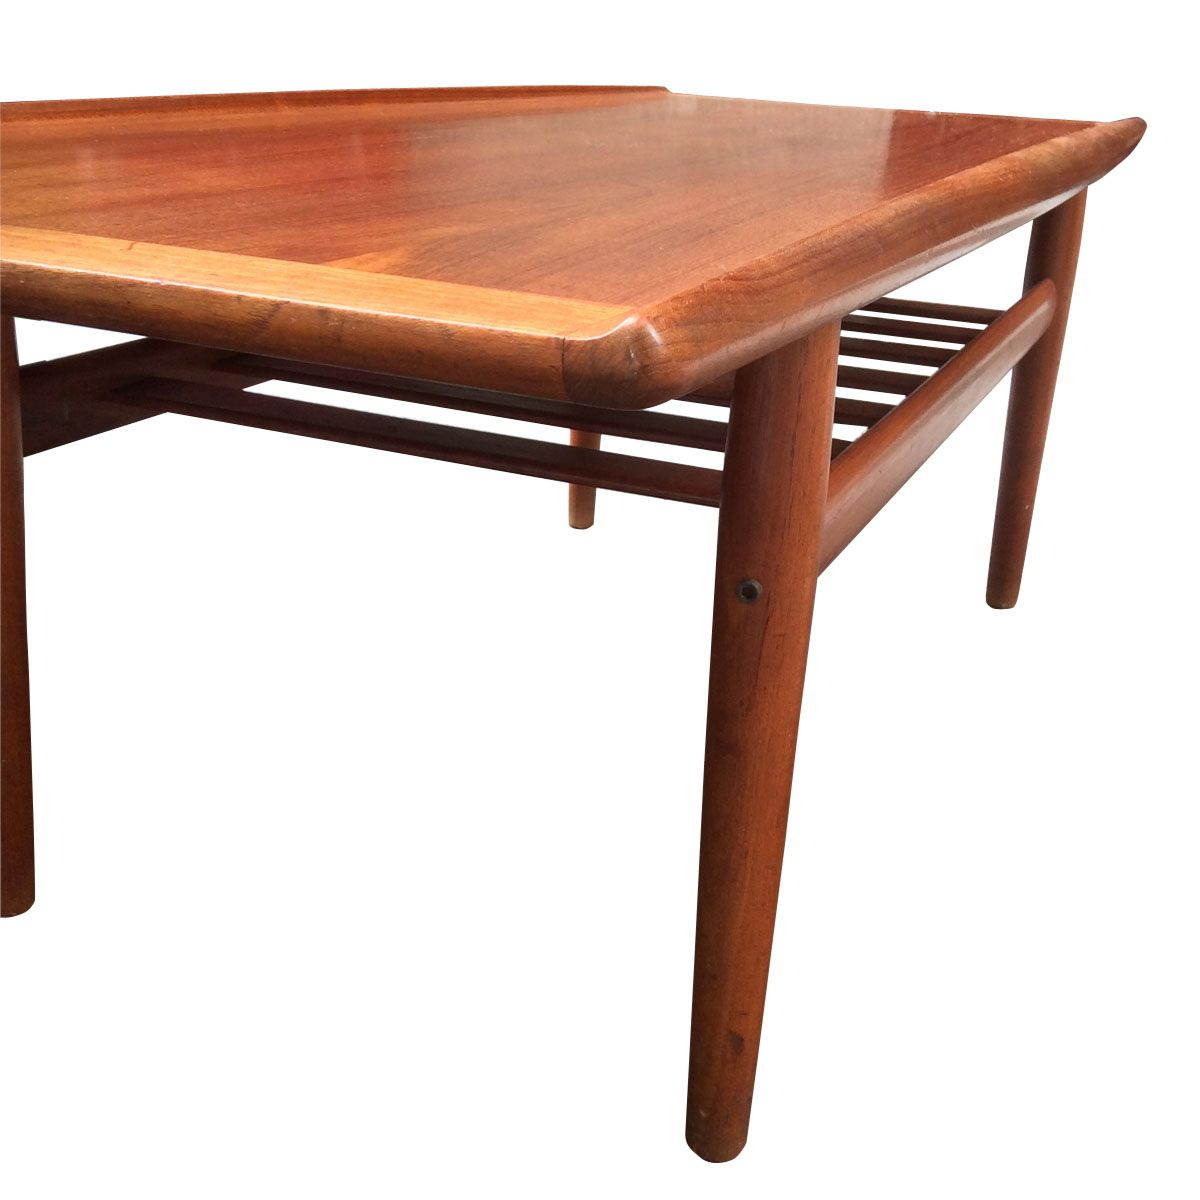 Scandinavian Coffee Table By Grete Jalk For Poul Jeppesen 1960 For Sale At Pamono